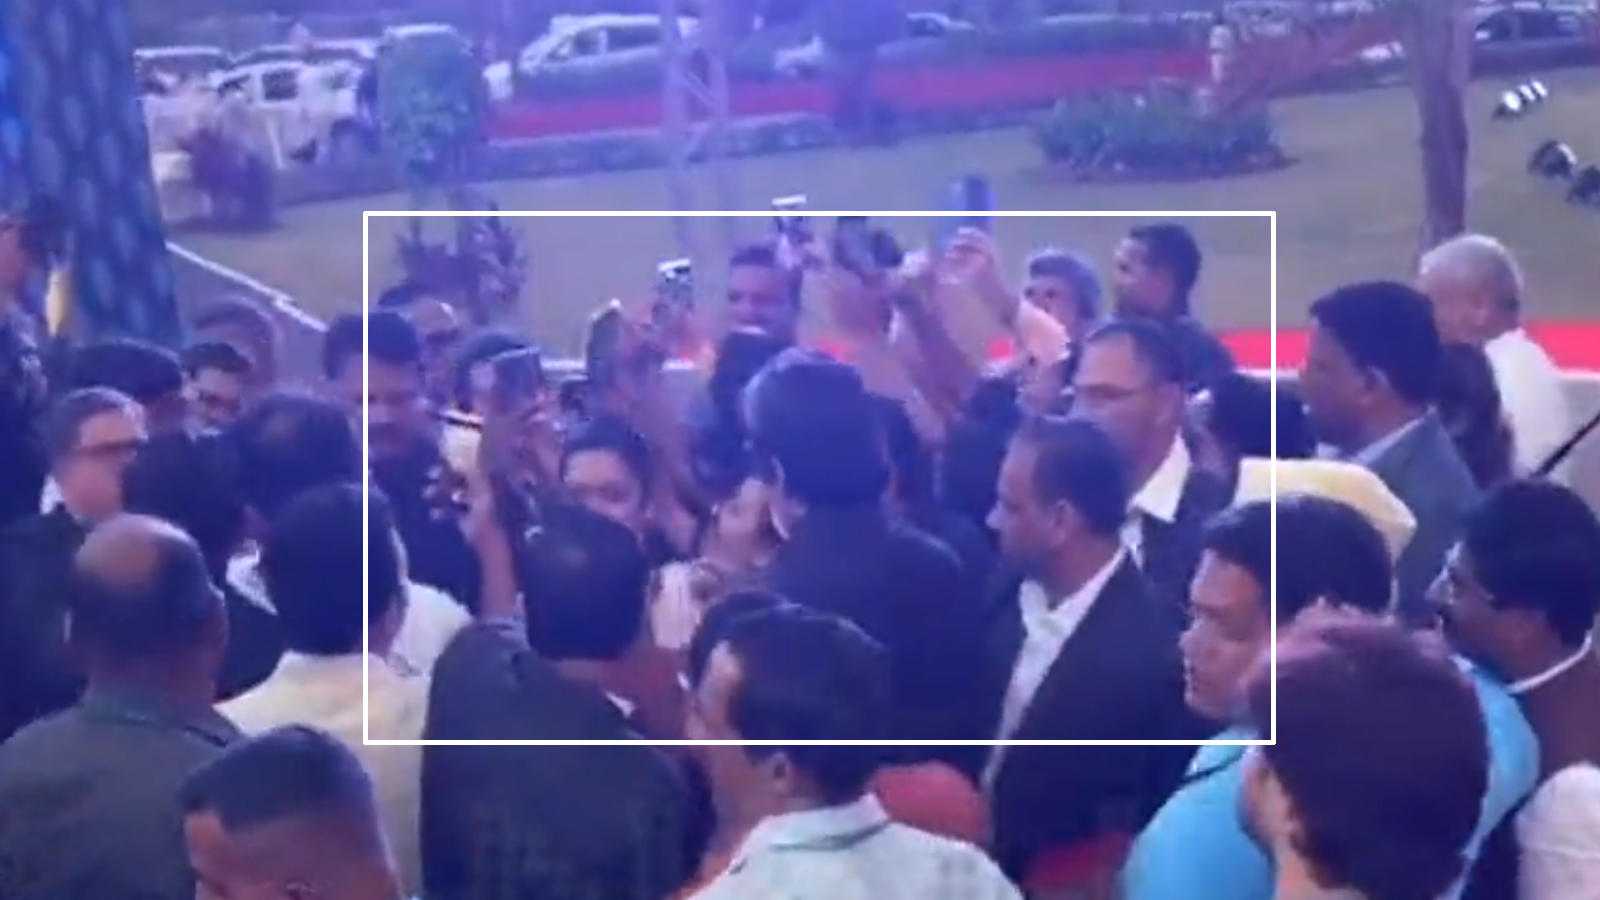 amitabh-bachchan-meets-female-fan-for-a-selfie-gets-mobbed